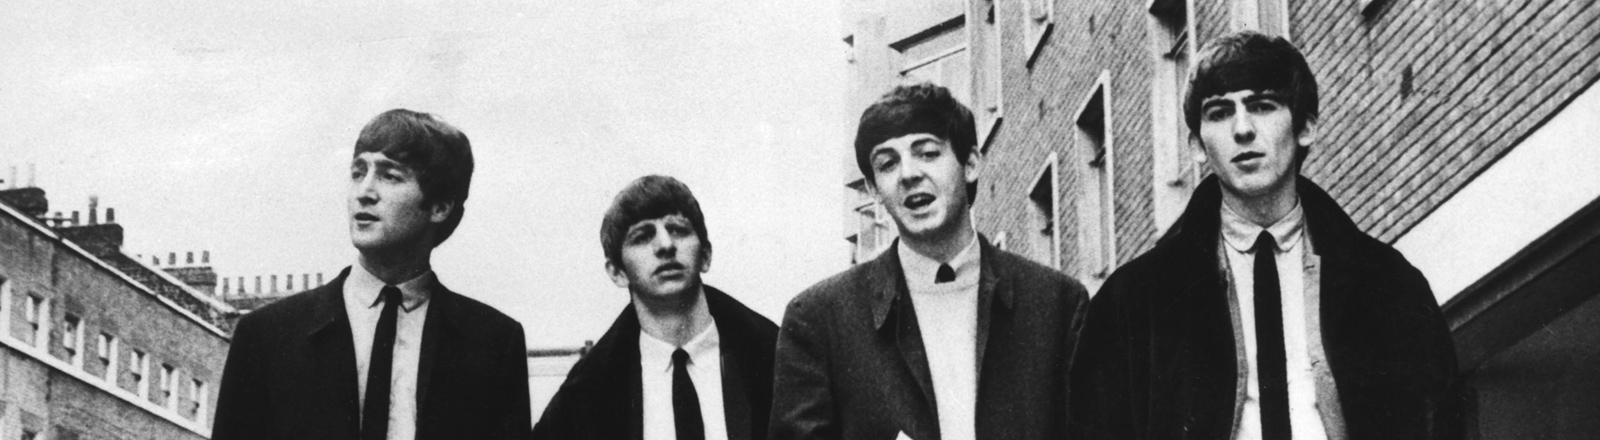 Die Beatles (von links nach rechts) John Lennon, Ringo Starr, Paul McCartney und George Harrison 1963 in London.